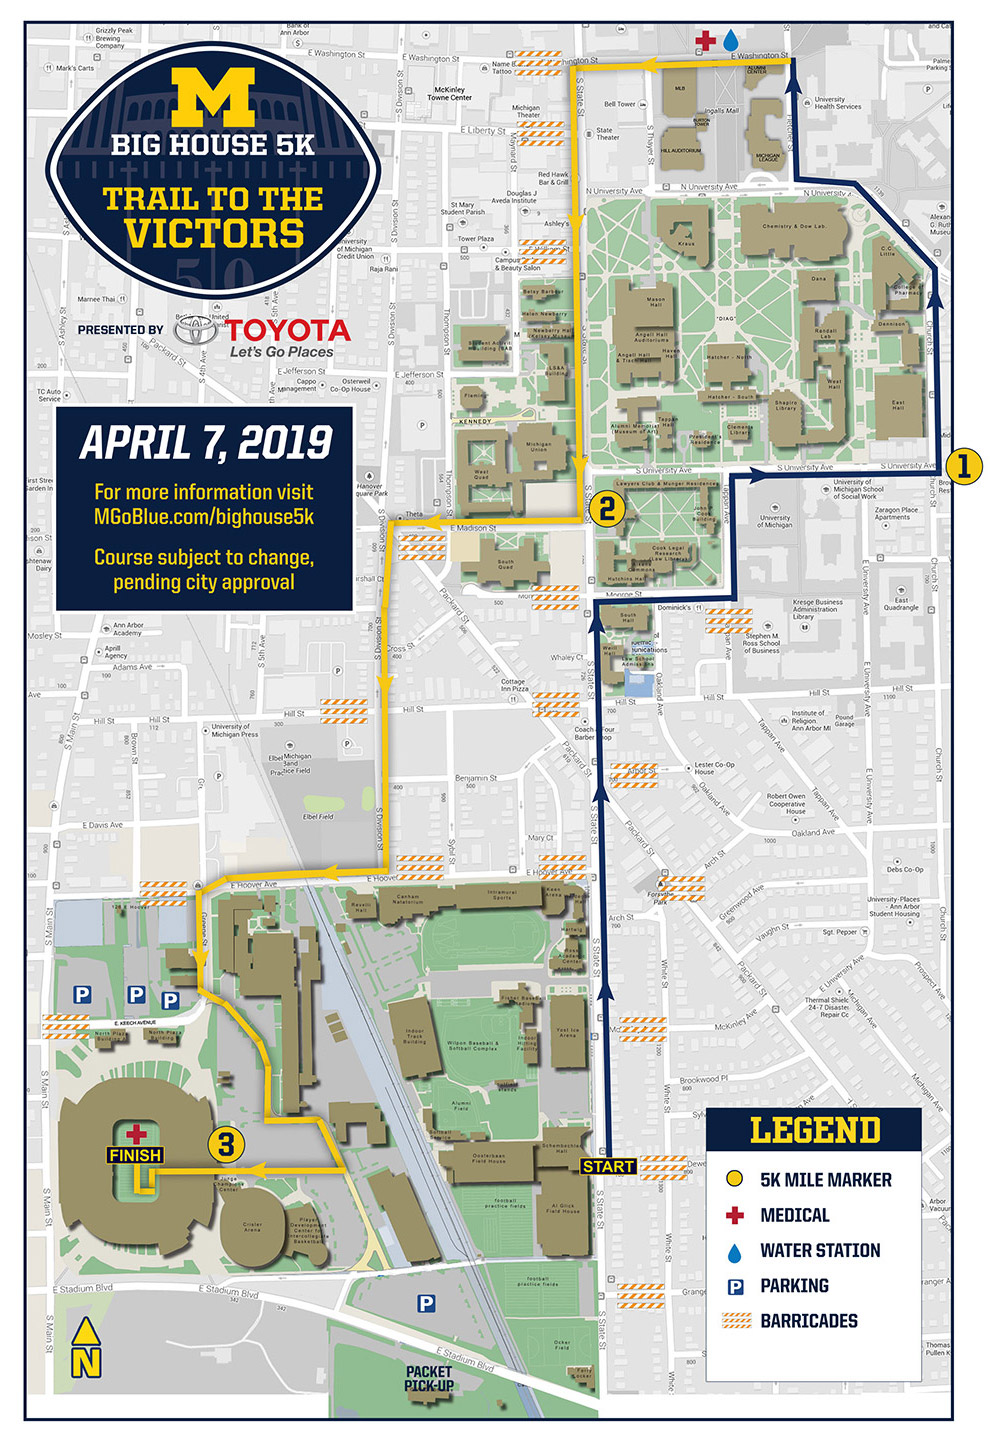 Big House 5K: Informational Maps - University of Michigan ... on map of michigan milford, map of michigan ithaca, map of michigan bay city, map of michigan taylor, map of michigan dundee, map of michigan holland, map of michigan utica, map of michigan owosso, map of michigan rochester, map of michigan south lyon, map of michigan canton, map of michigan alpena, map of michigan livonia, map of michigan new york, map of michigan northville, map of michigan wixom, map of michigan warren, map of michigan sleeping bear dunes, map of michigan garden city, map of michigan marquette,